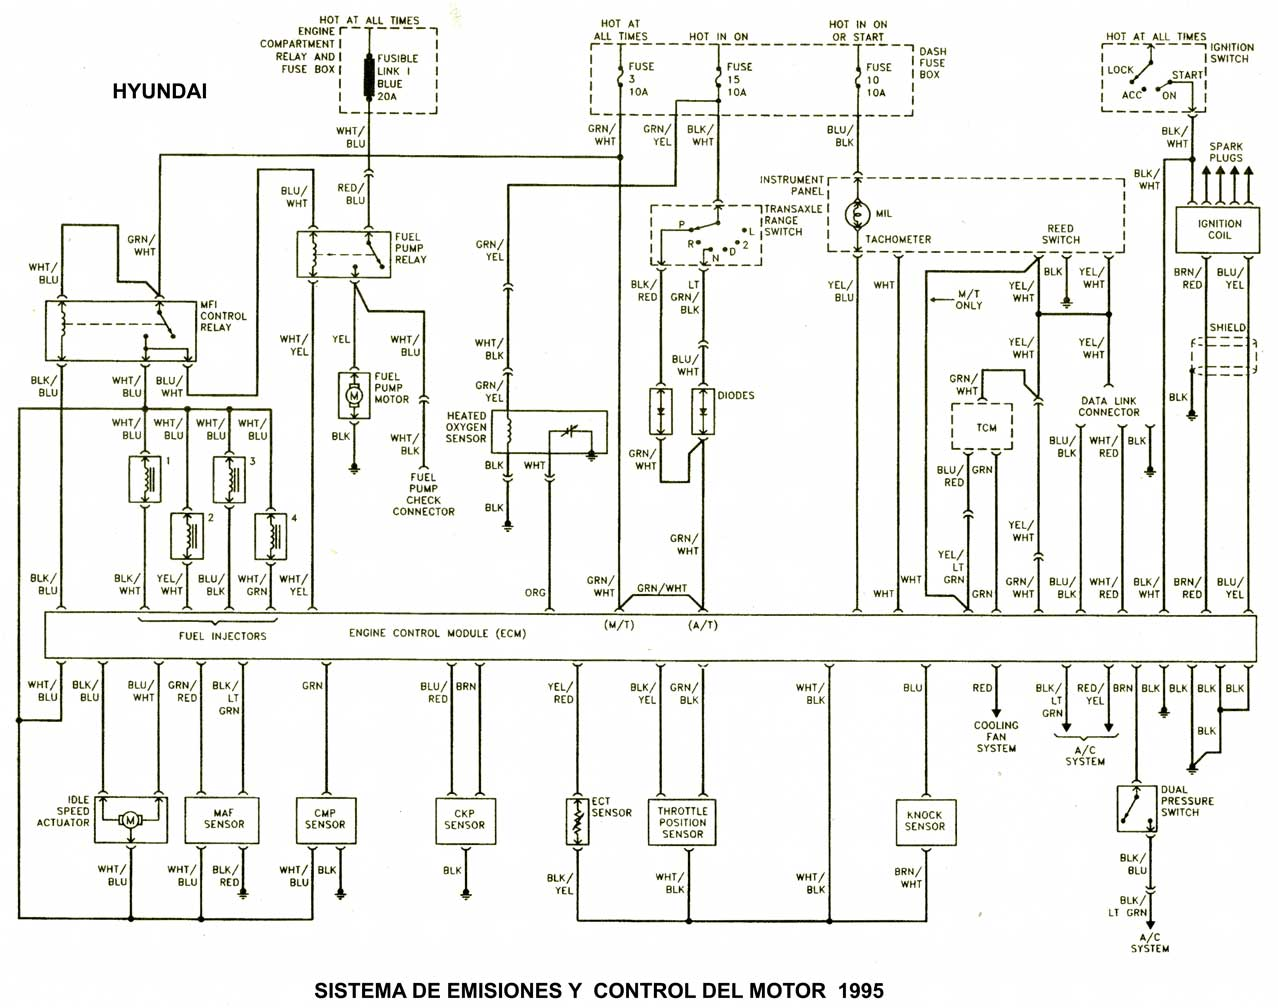 dhyundai9 1989 gmc sierra fuse box diagram 1989 gmc sierra interior wiring 1989 gmc sierra 1500 fuse box diagram at cita.asia